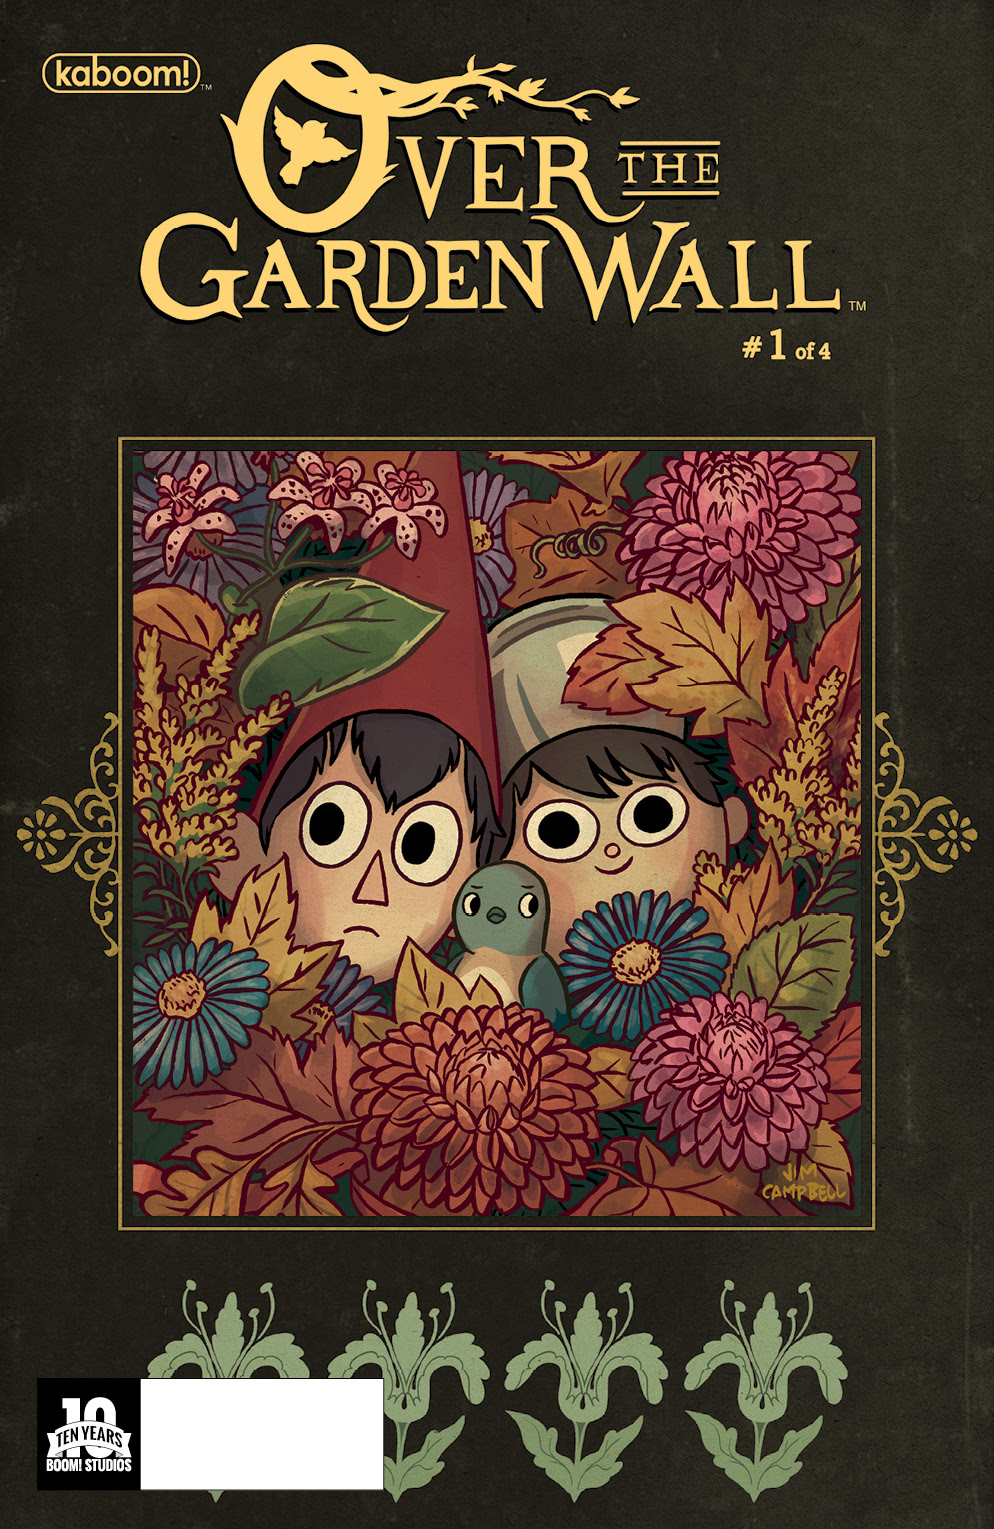 Over The Garden Wall New Comic Series Announced